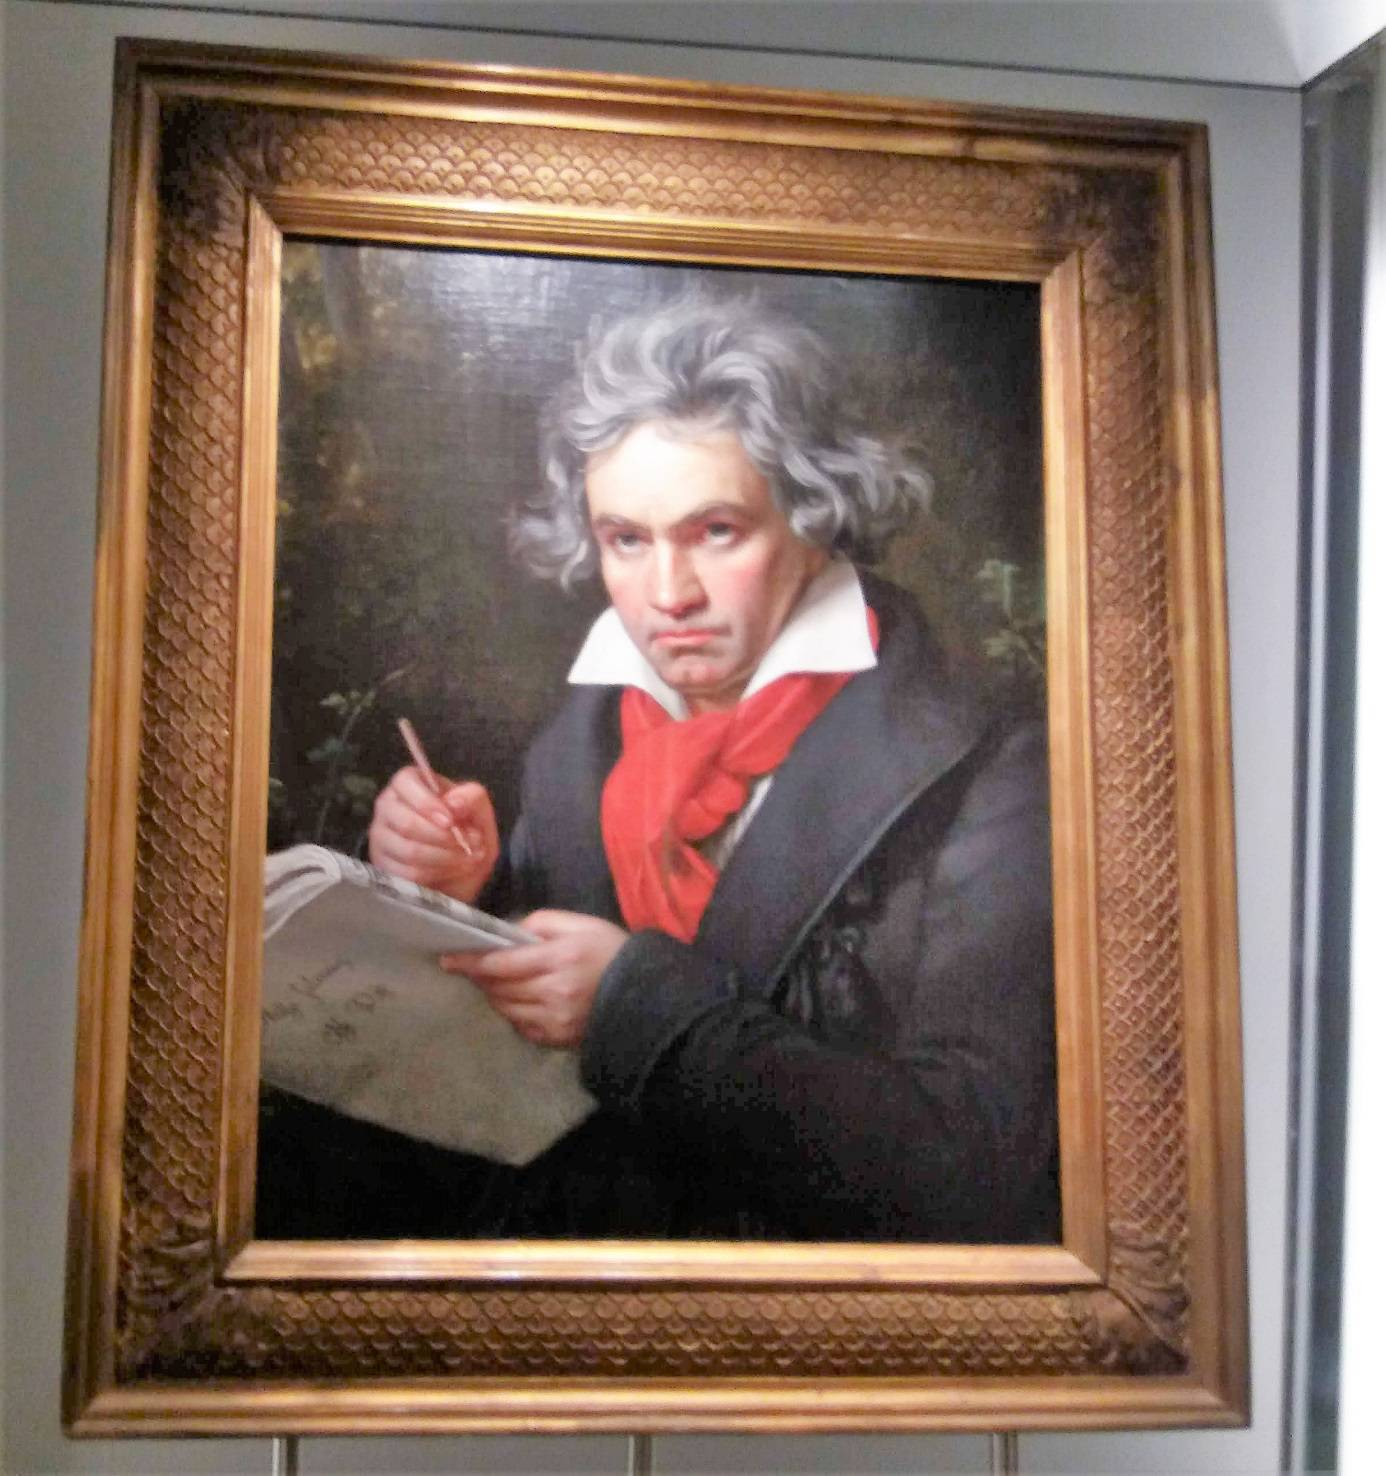 Lezing Beethoven in Westerlo